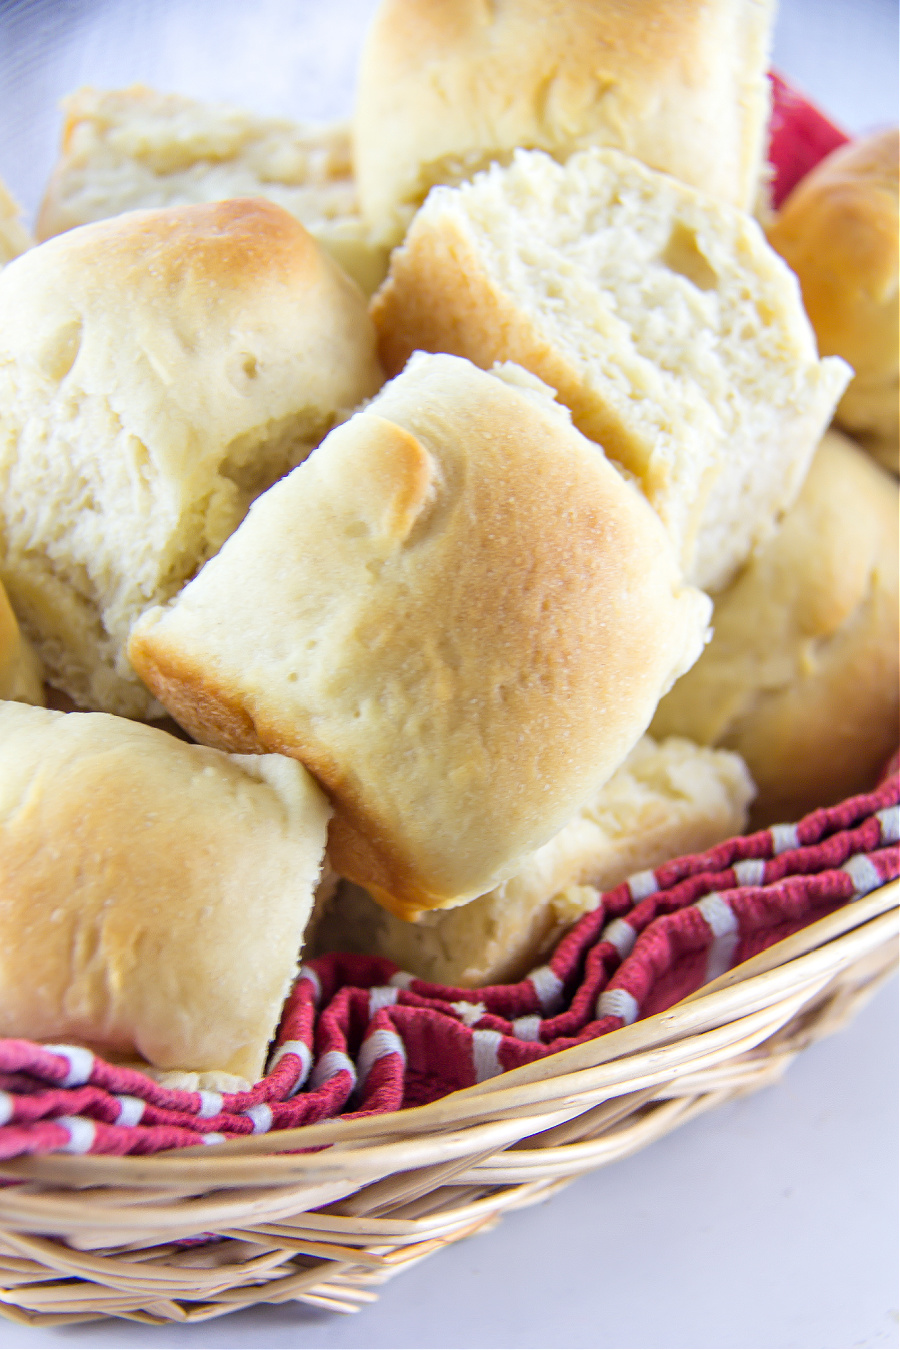 homemade yeast dinner rolls inside a basket with a red towel underneath